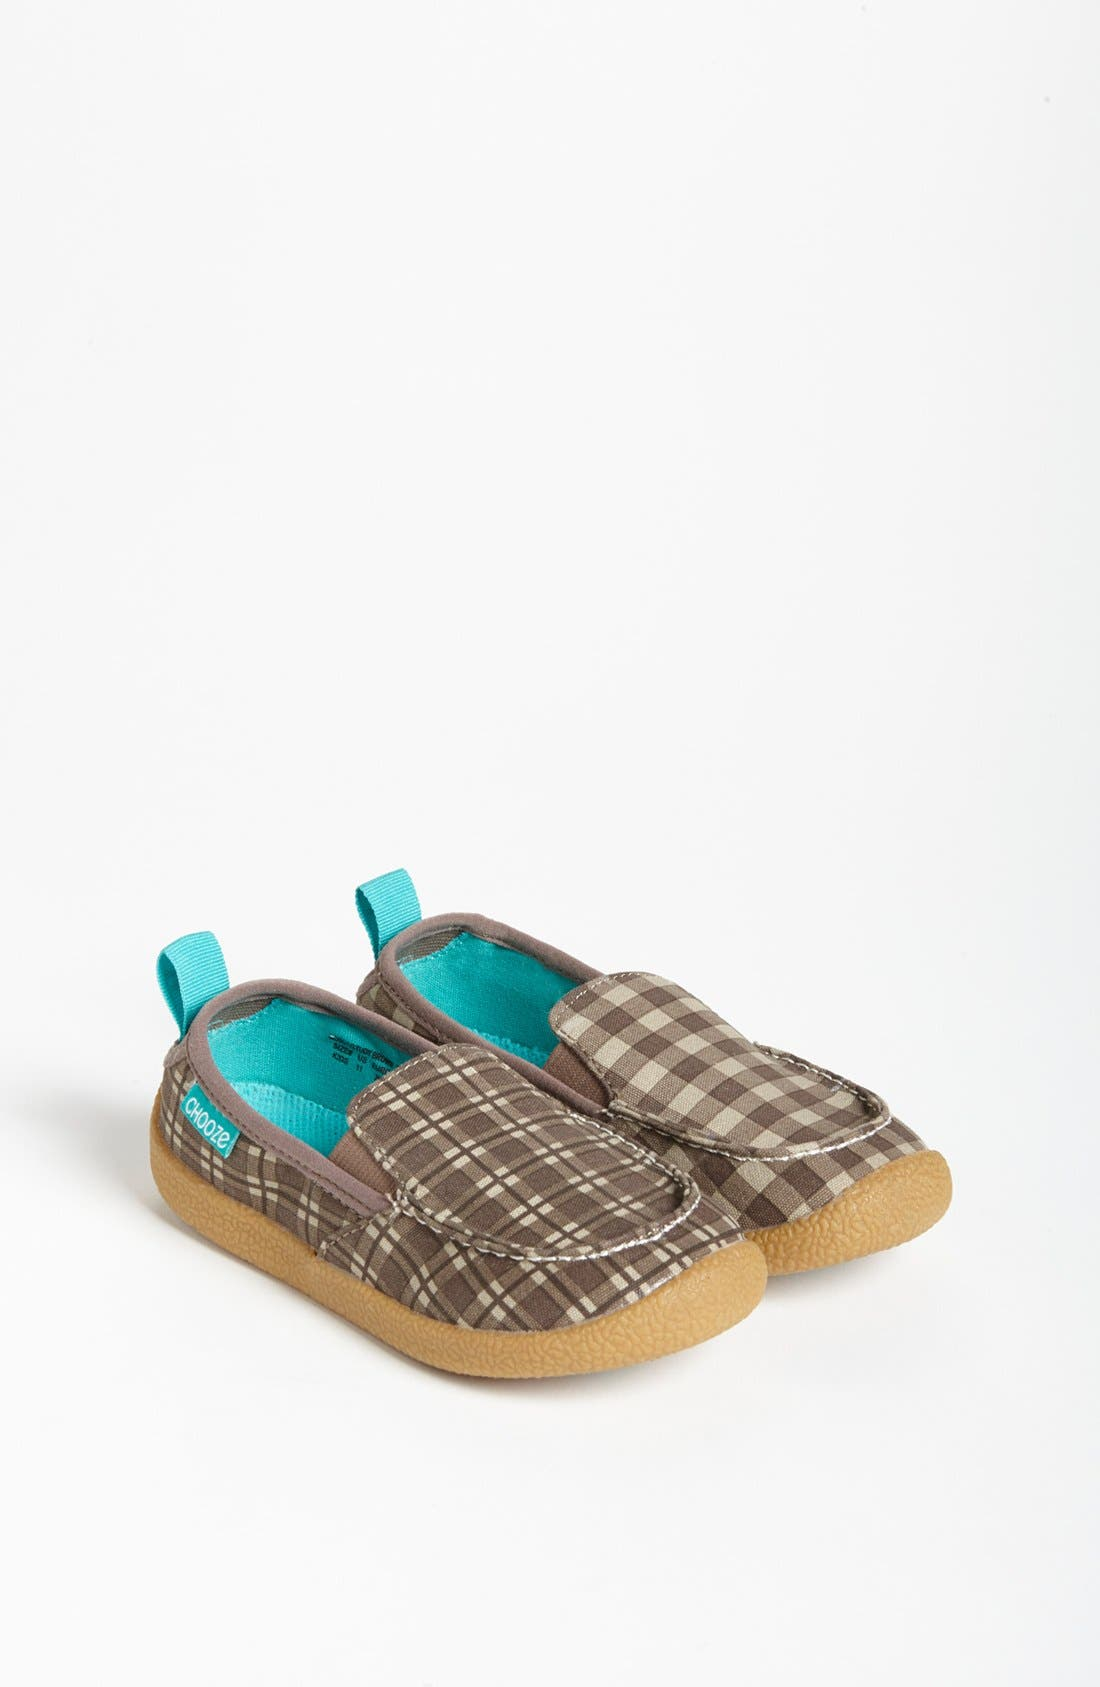 Alternate Image 1 Selected - CHOOZE 'Scout - Study Brown' Slip-On Loafer (Toddler, Little Kid & Big Kid)